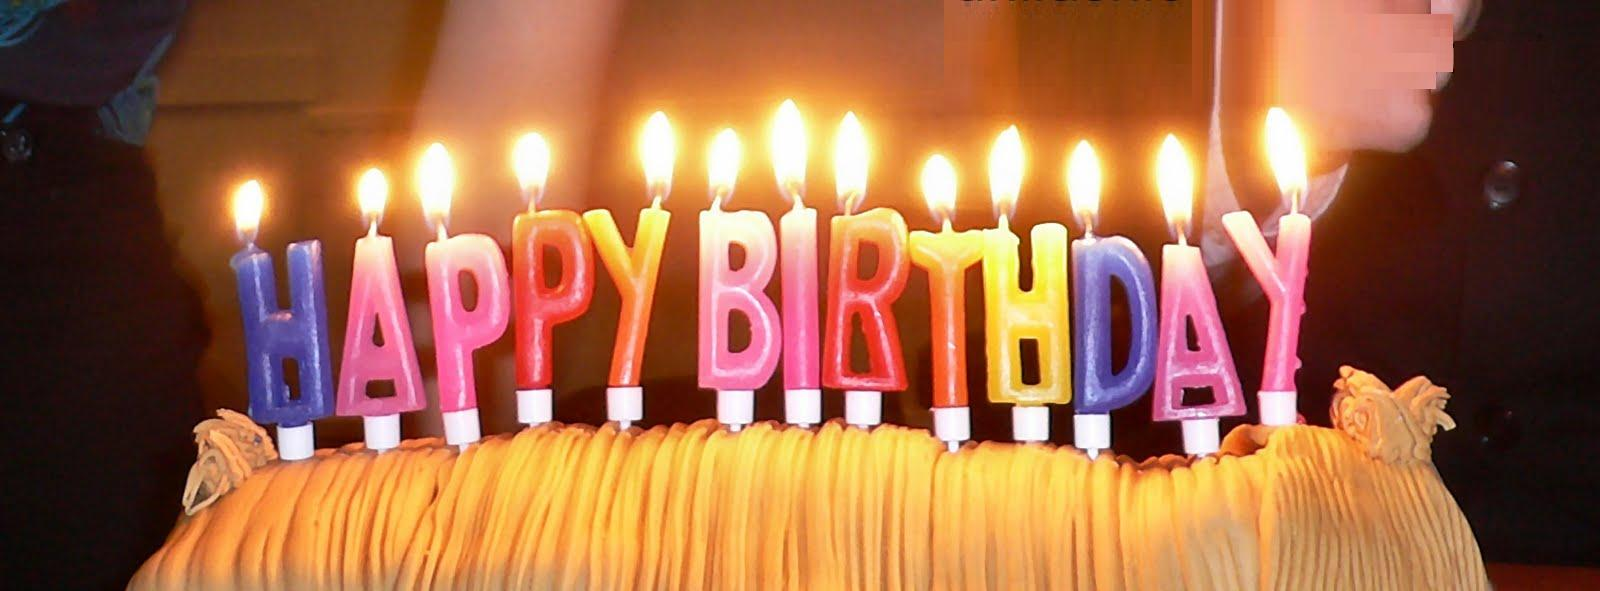 birthday wallpaper for facebook ; New-HD-Wallpaper-Happy-Birthday-For-Facebook-Cover